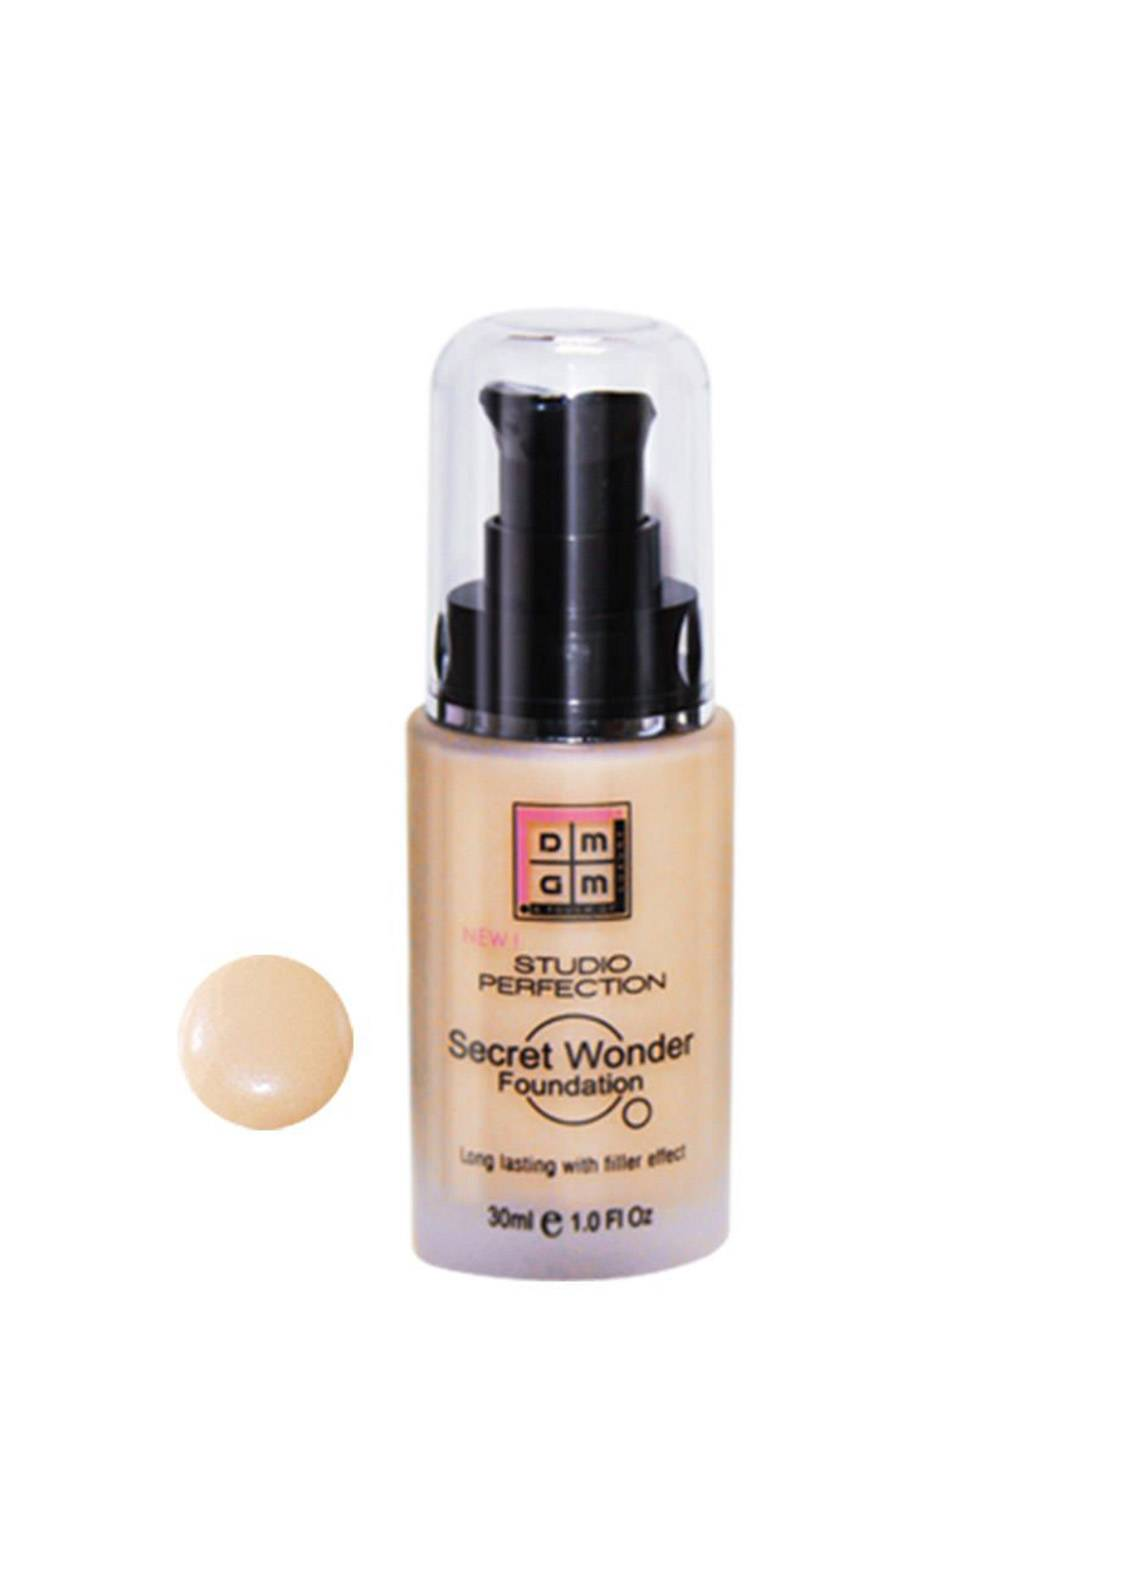 DMGM Studio Perfection Secret Wonder Foundation - Vanilla-210